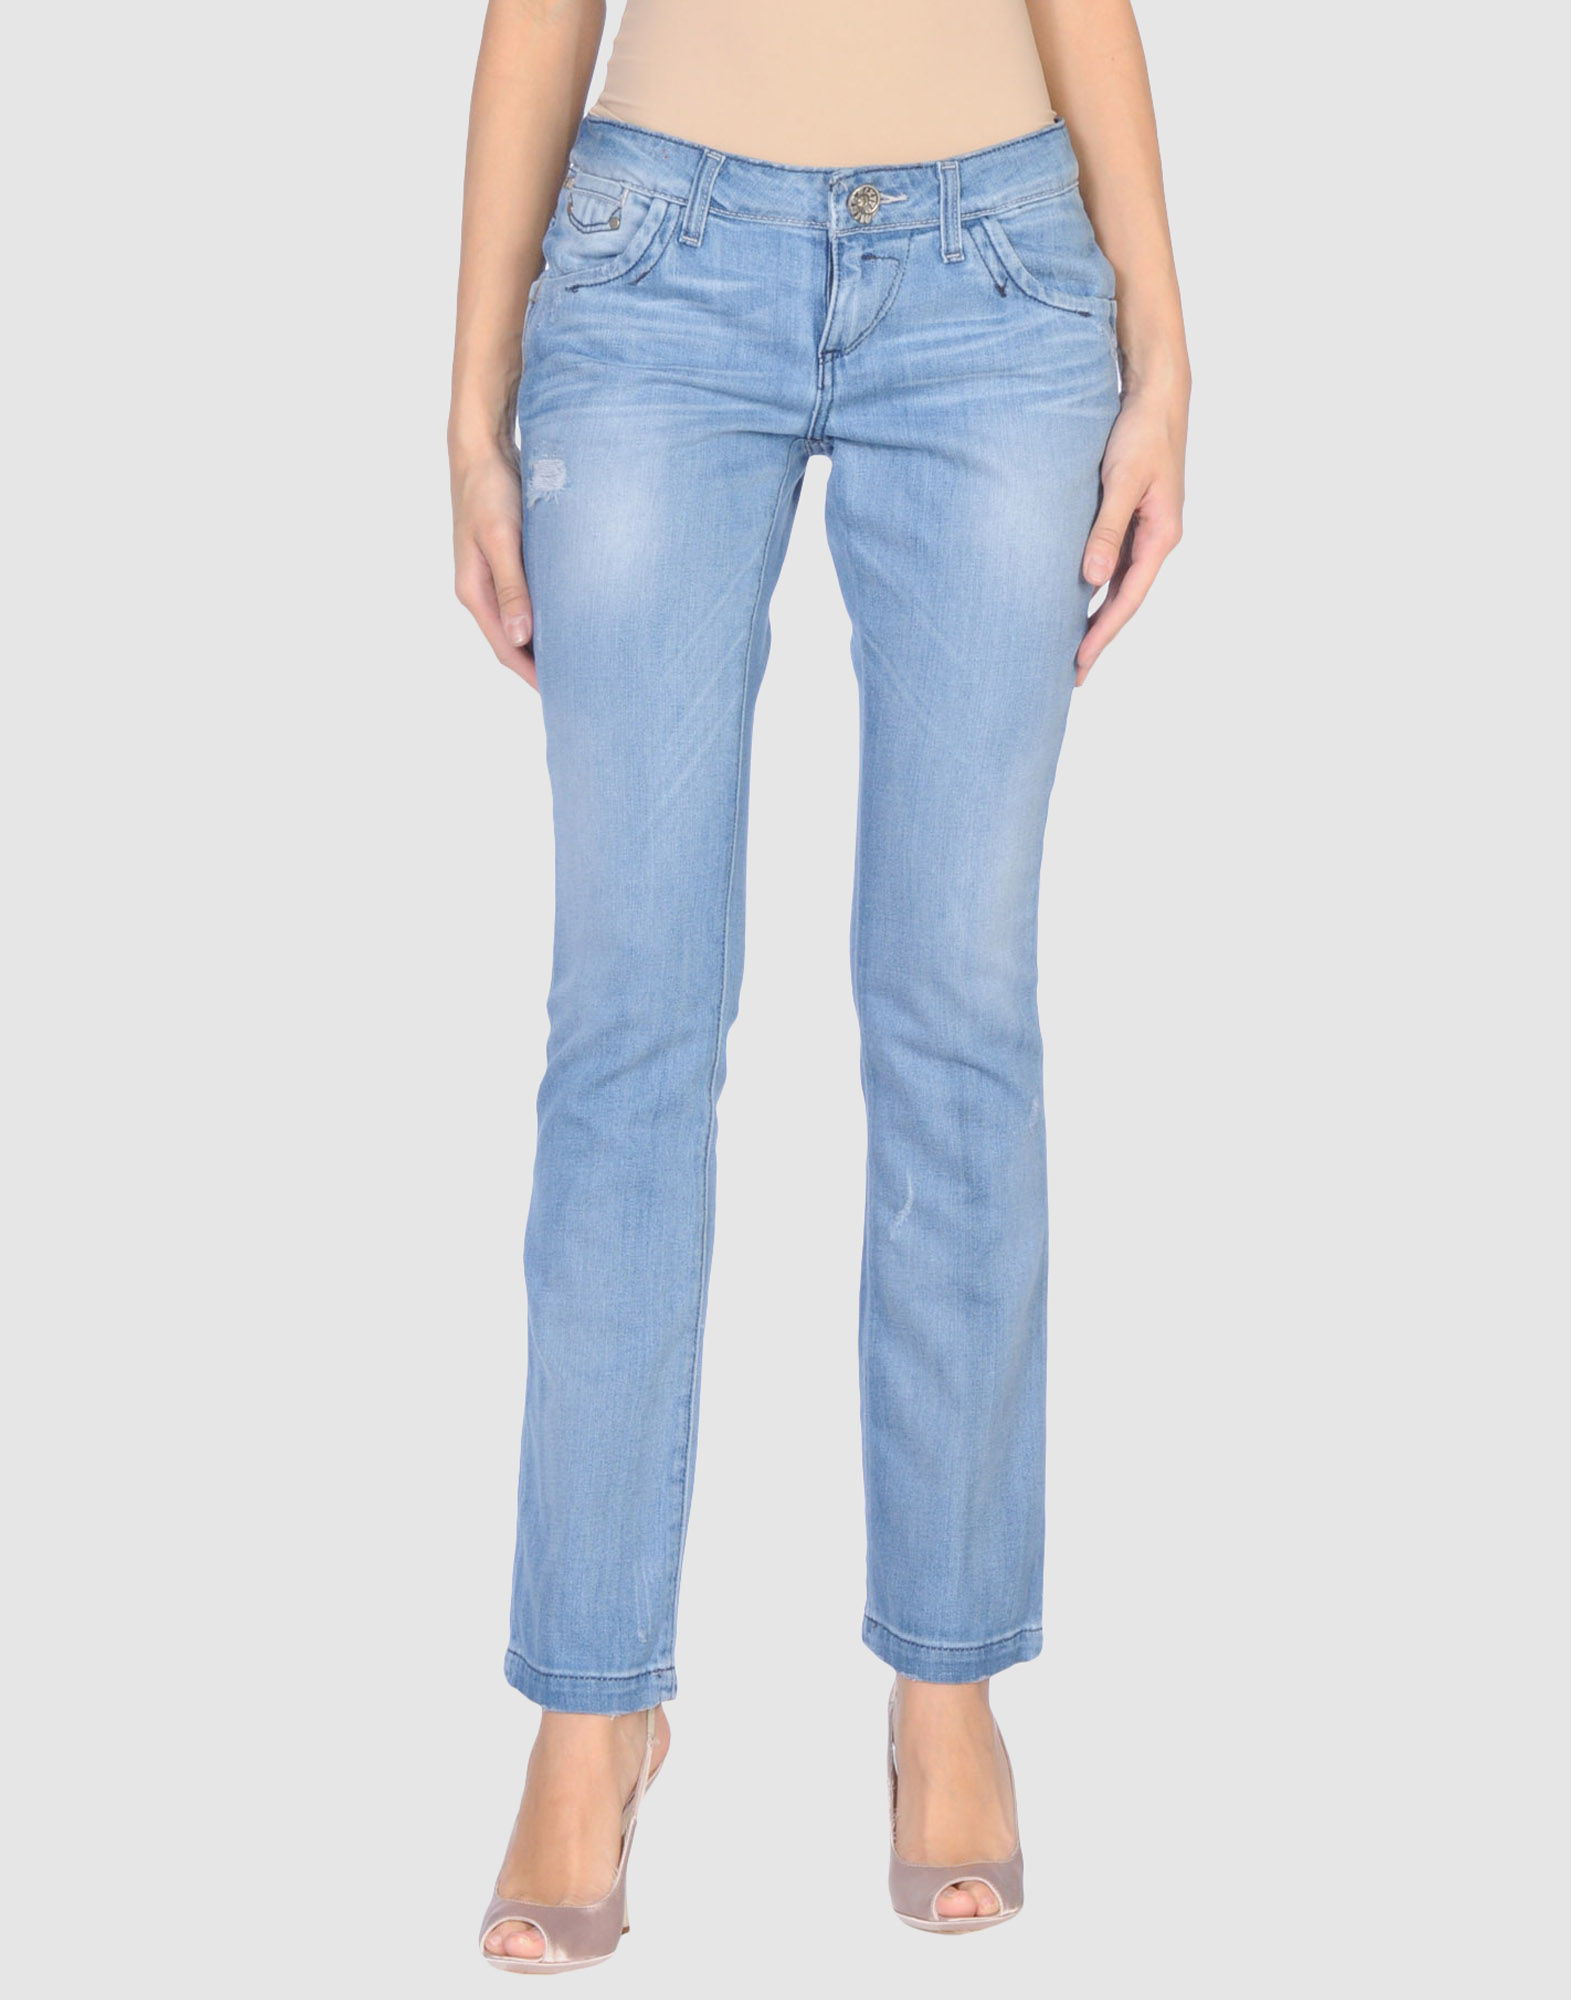 MISS SIXTY Jeans - Item 42183691